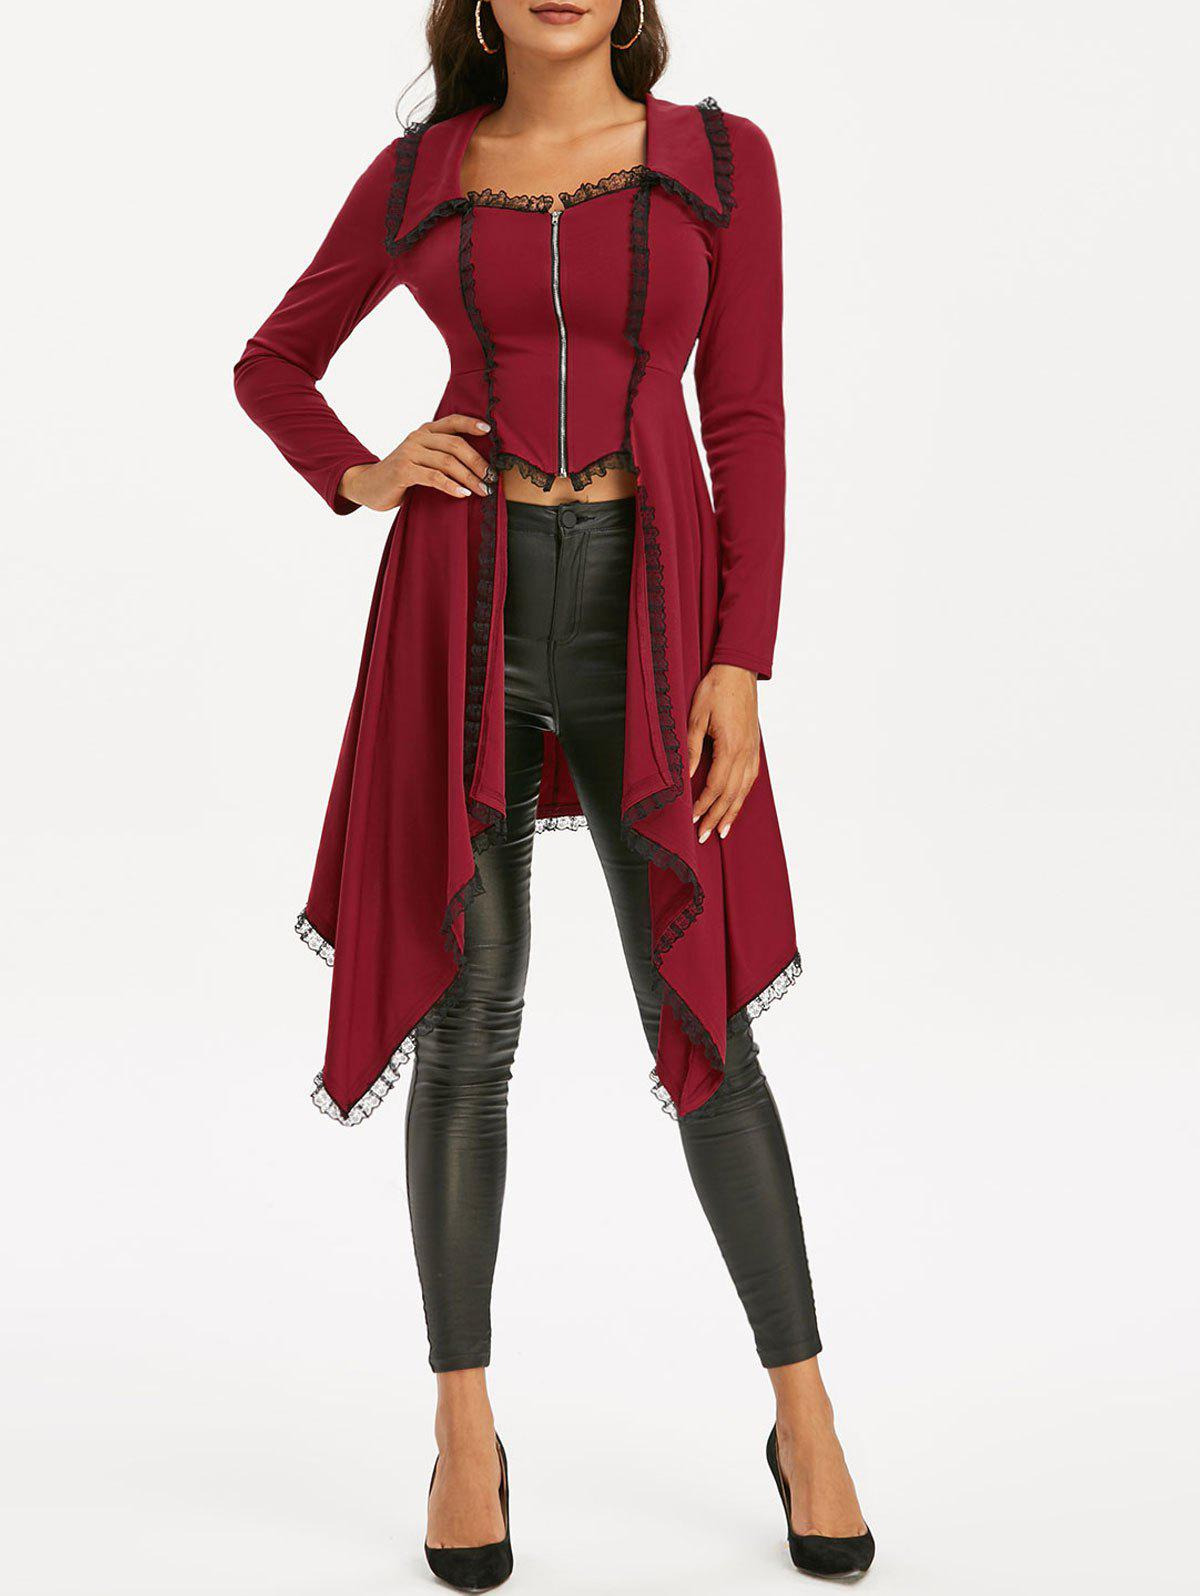 Lace Trim Lace-up Faux Twinset Skirted Coat - RED WINE XL